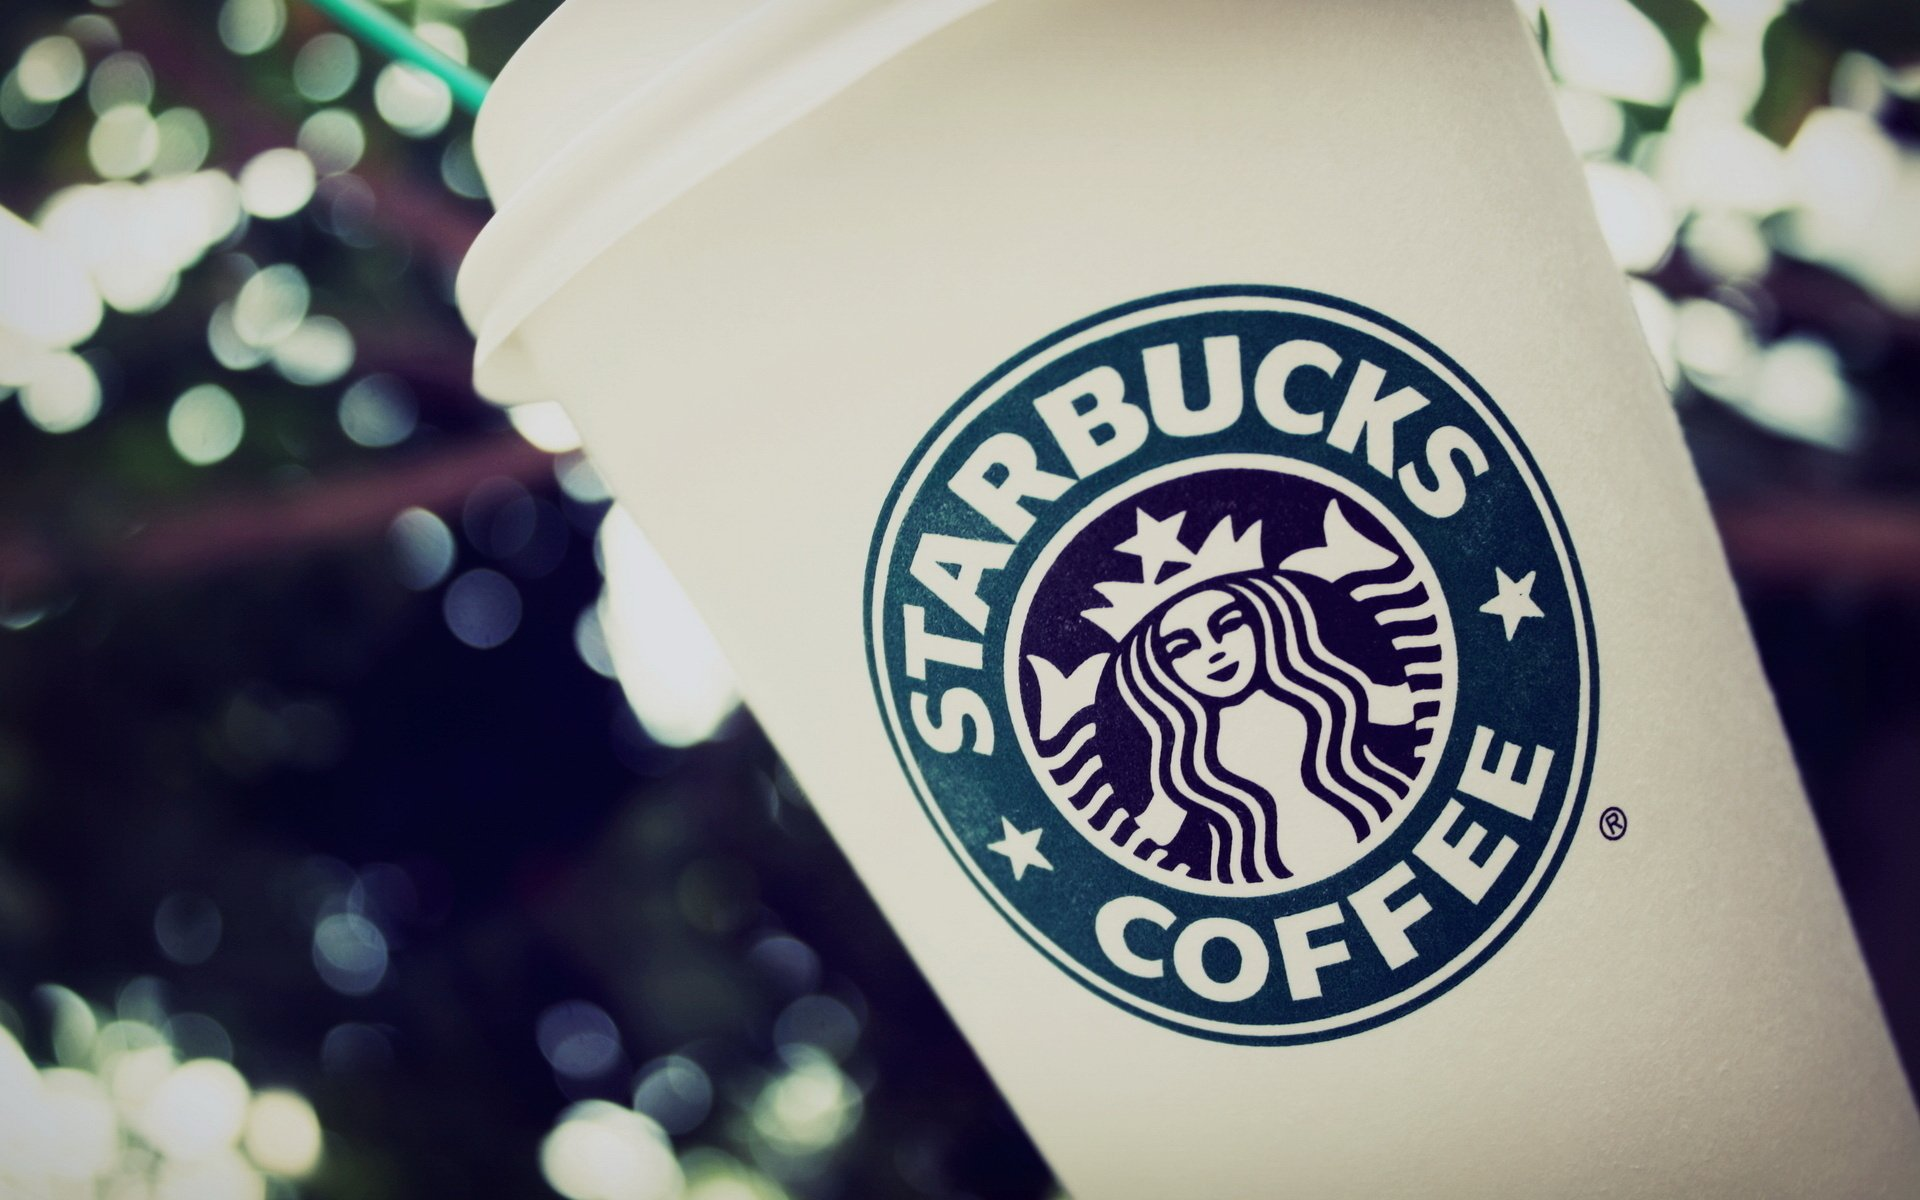 8 starbucks hd wallpapers background images wallpaper abyss hd wallpaper background image id260965 1920x1200 products starbucks voltagebd Gallery